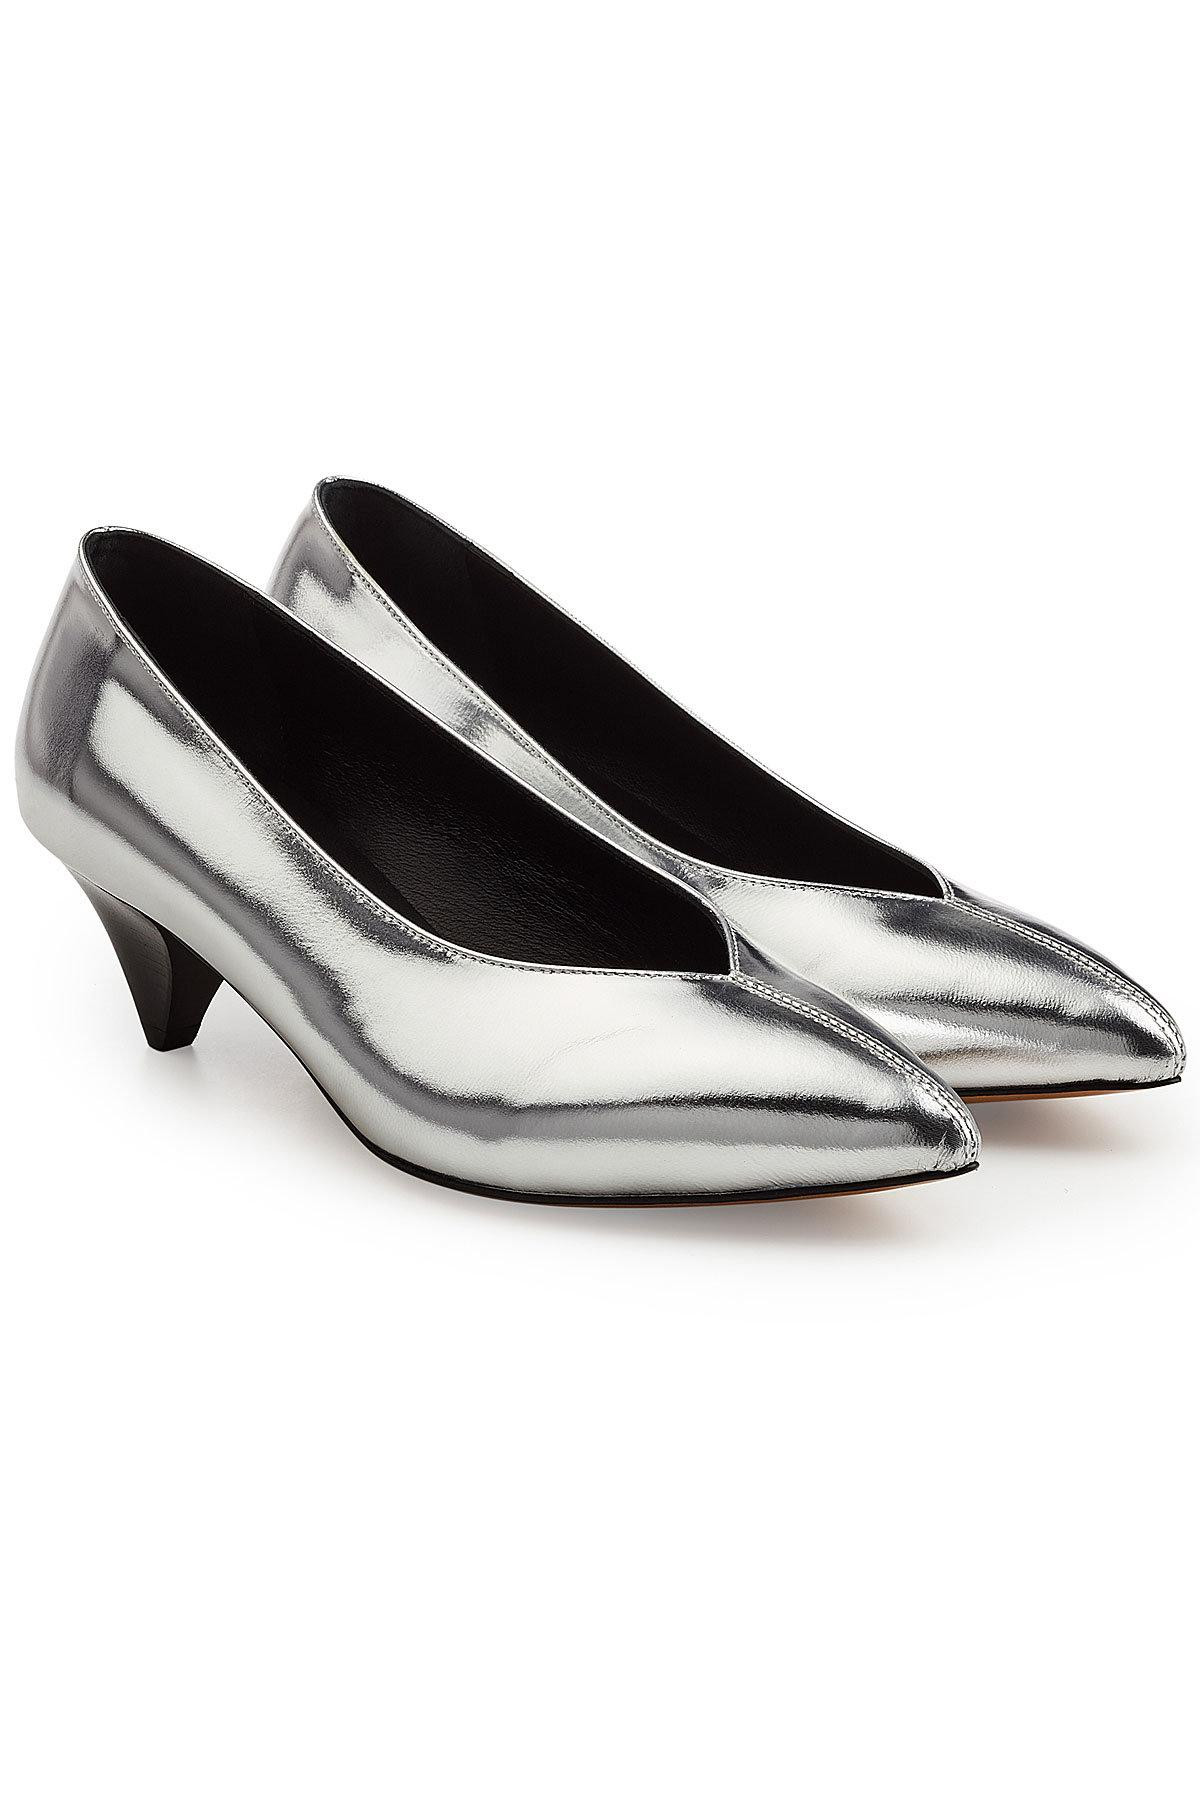 Isabel Marant Metallic Leather Pumps In Silver